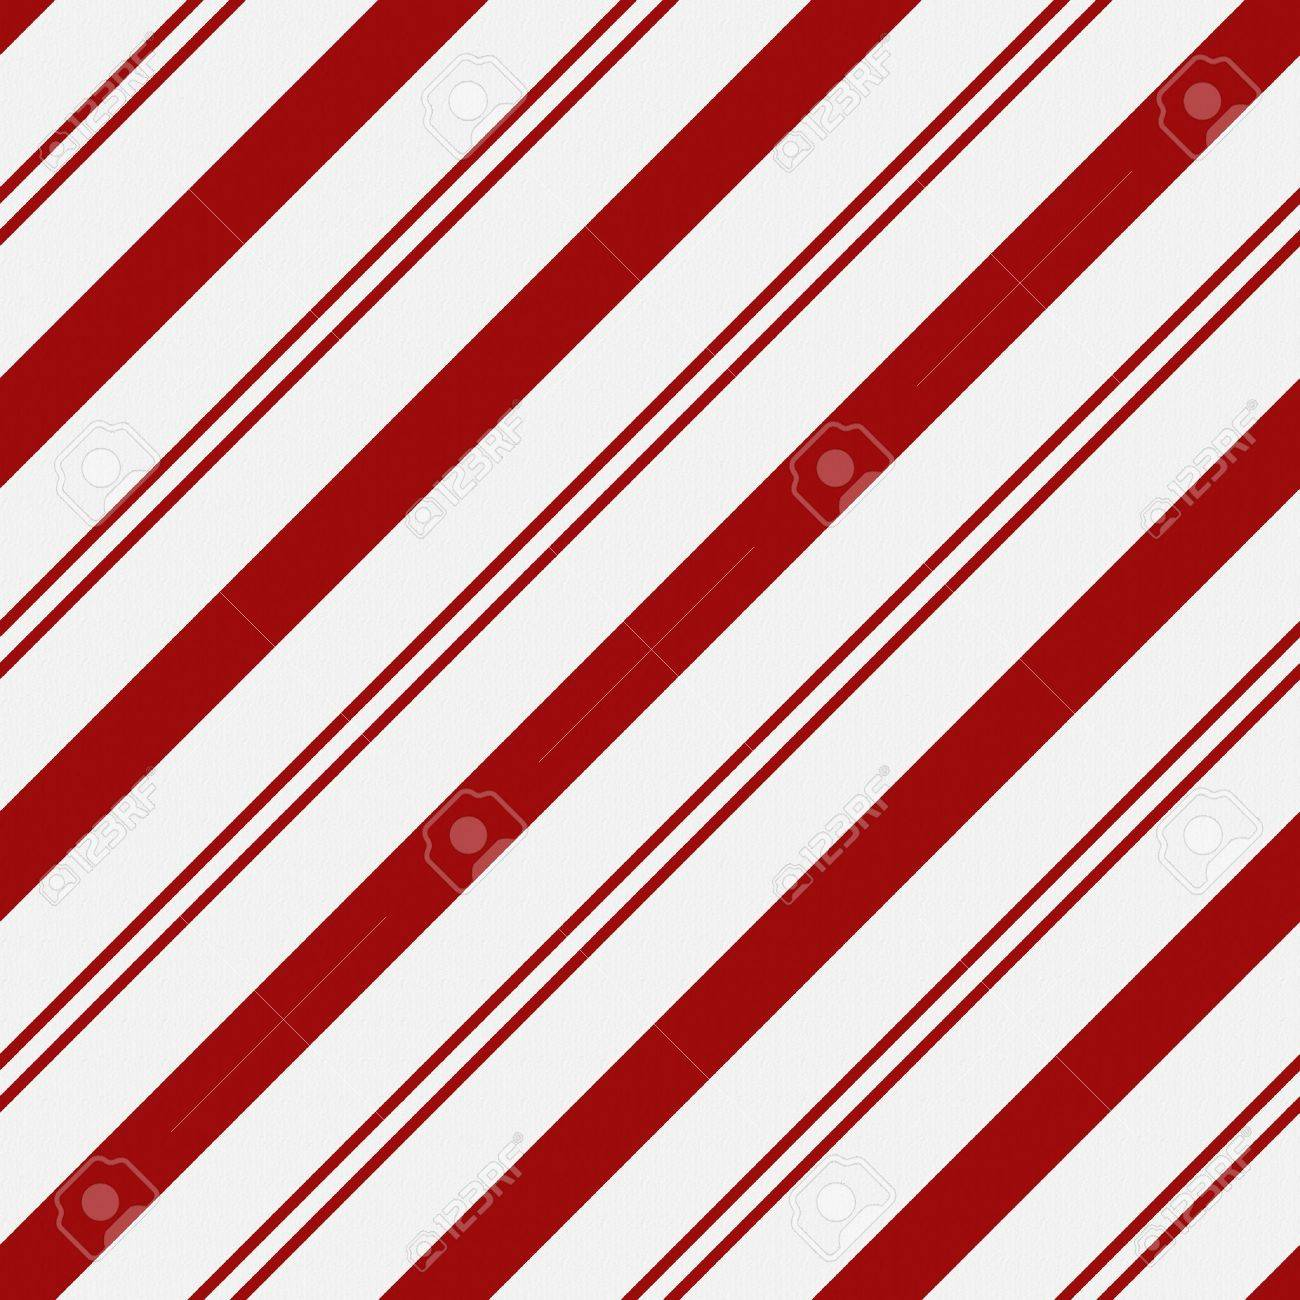 Off white diagonal striped plastic texture picture free photograph - Diagonal View Red And White Striped Fabric Background That Is Seamless And Repeats Stock Photo